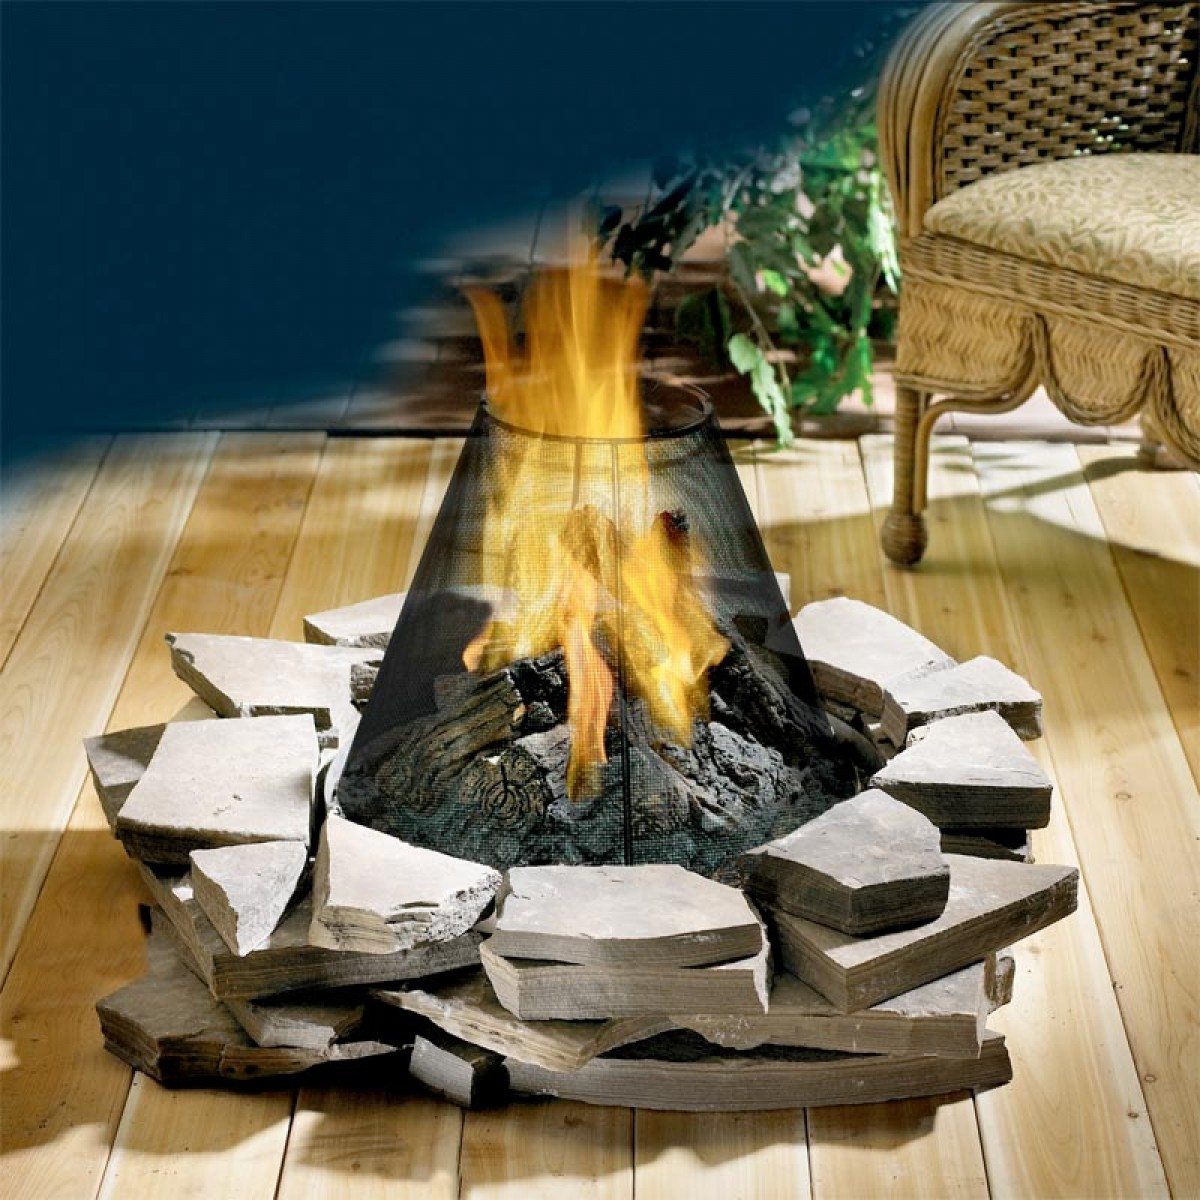 pit pits for custom logs design fireplace simple propane architecture pleasurable gas ideas perfect outdoor fire ceramic